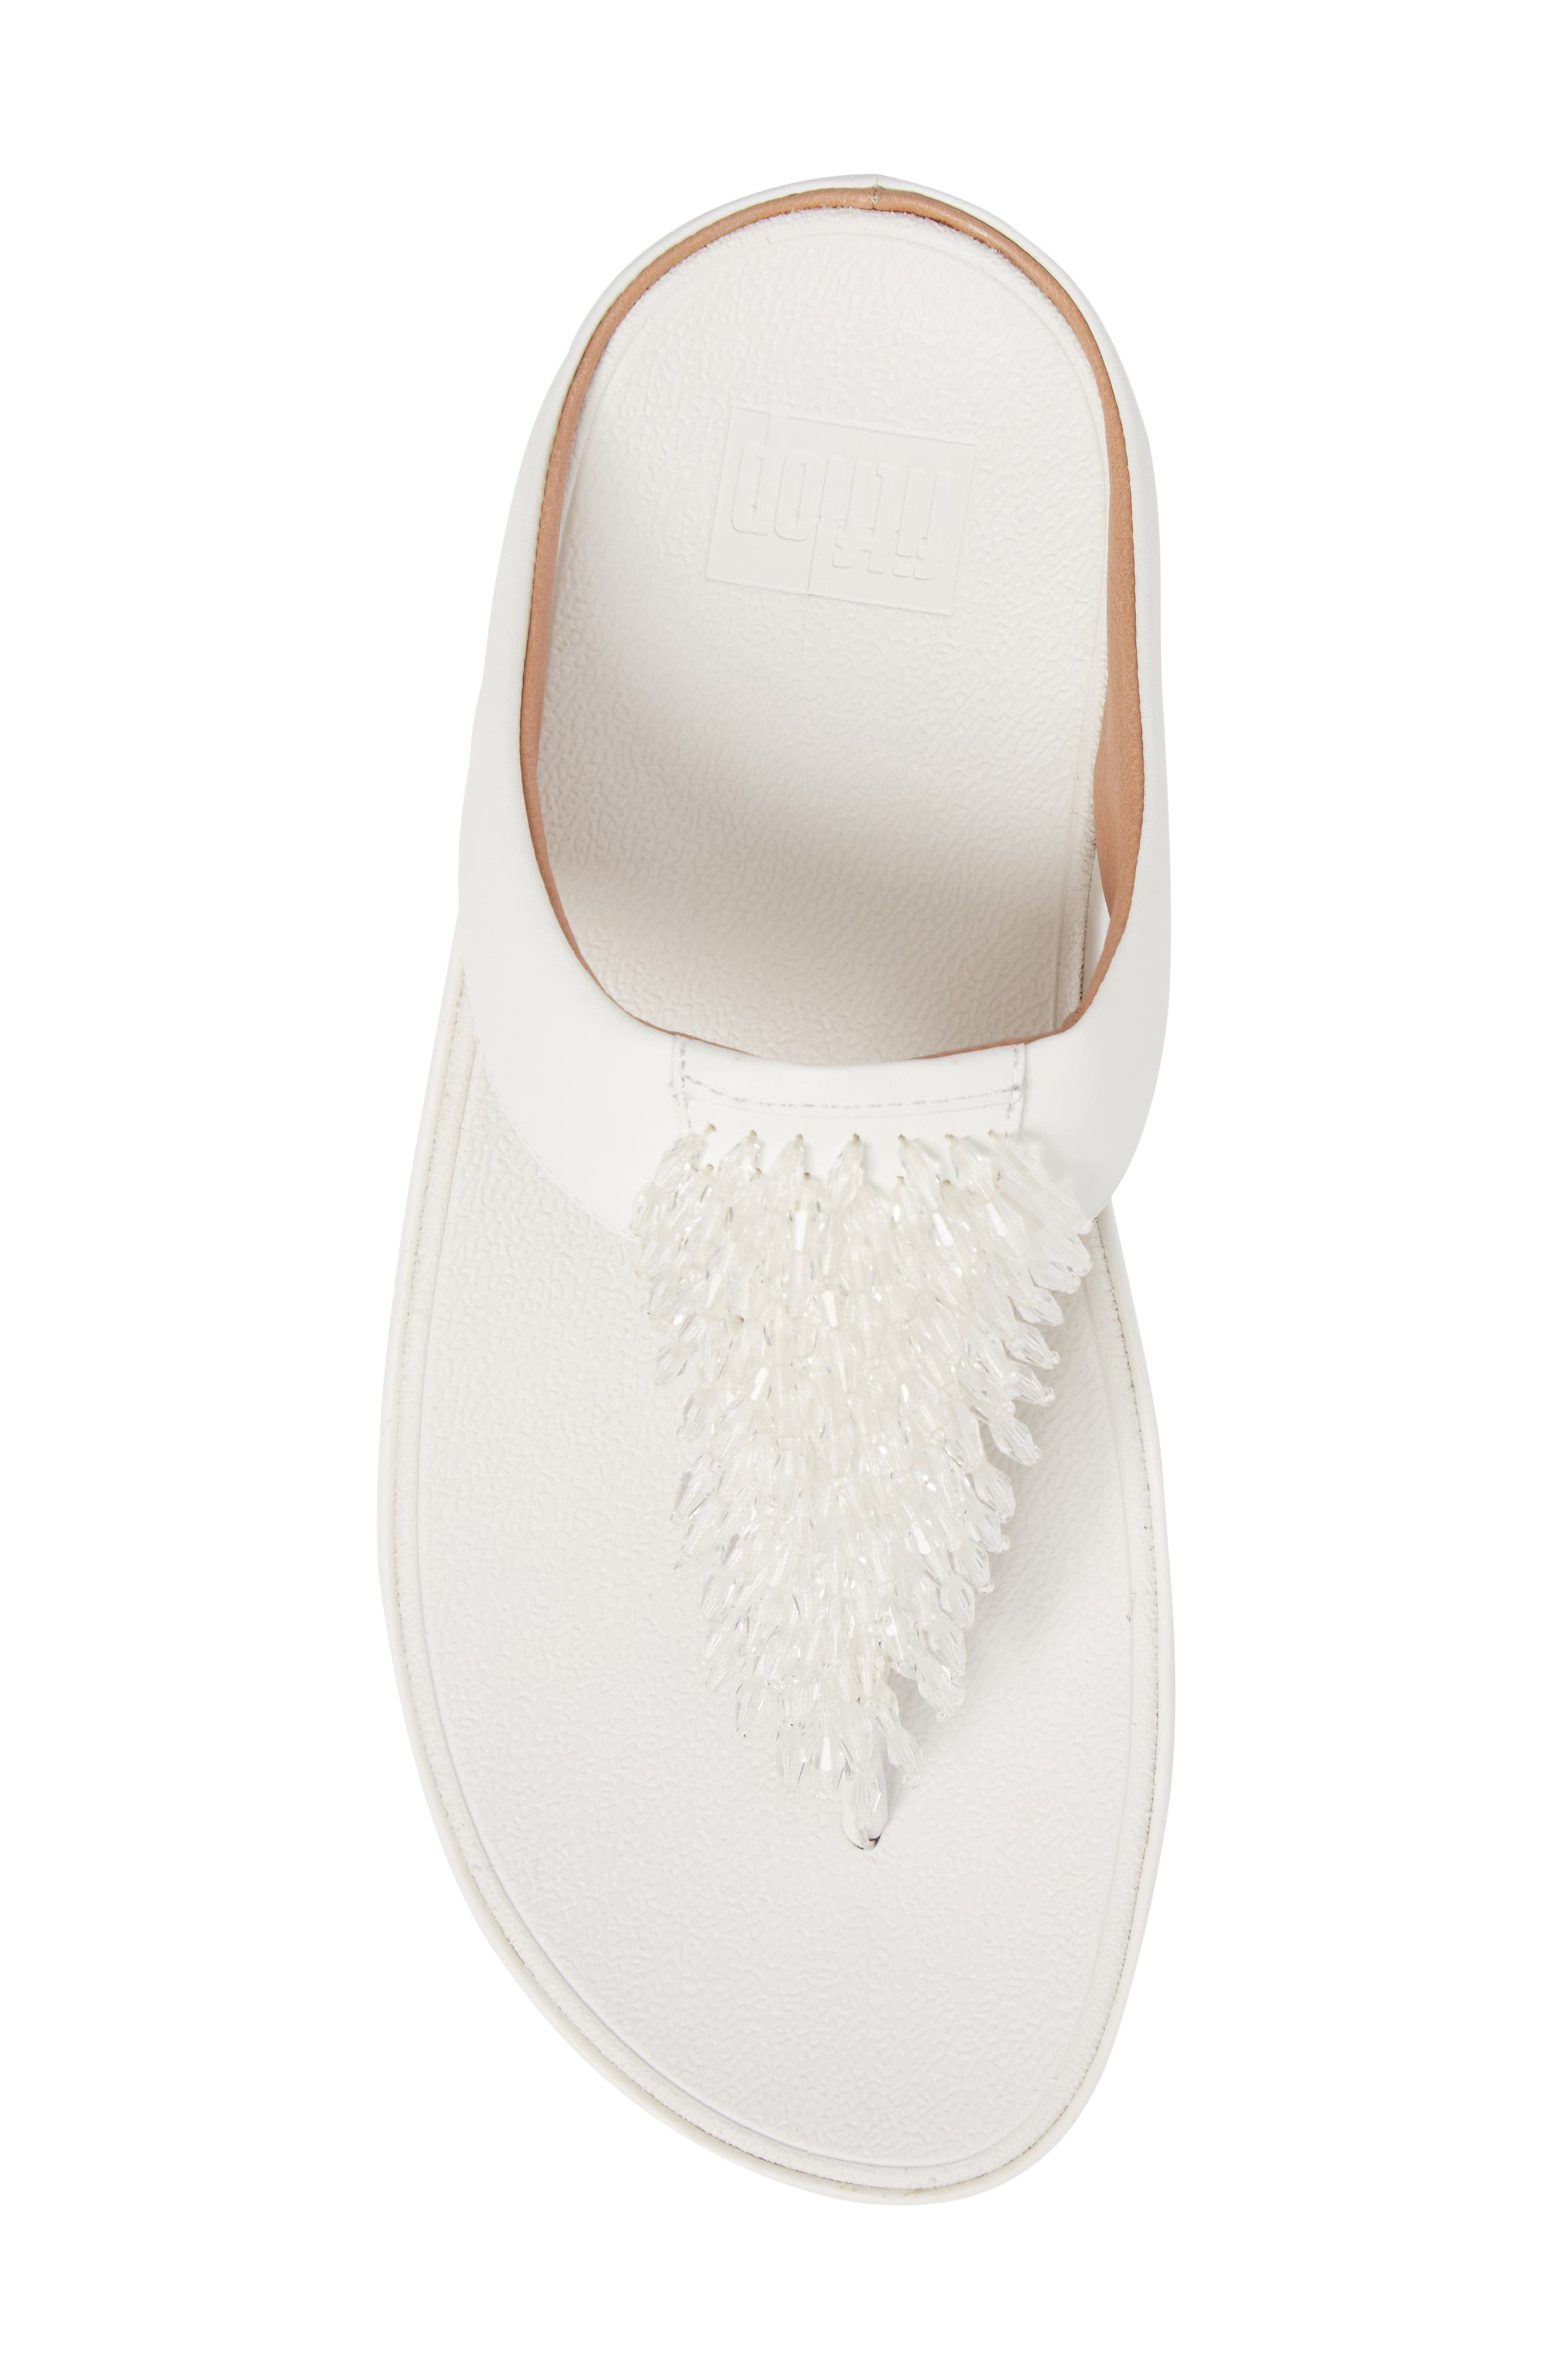 FITFLOP,                             Rumba Sandal,                             Alternate thumbnail 5, color,                             URBAN WHITE LEATHER